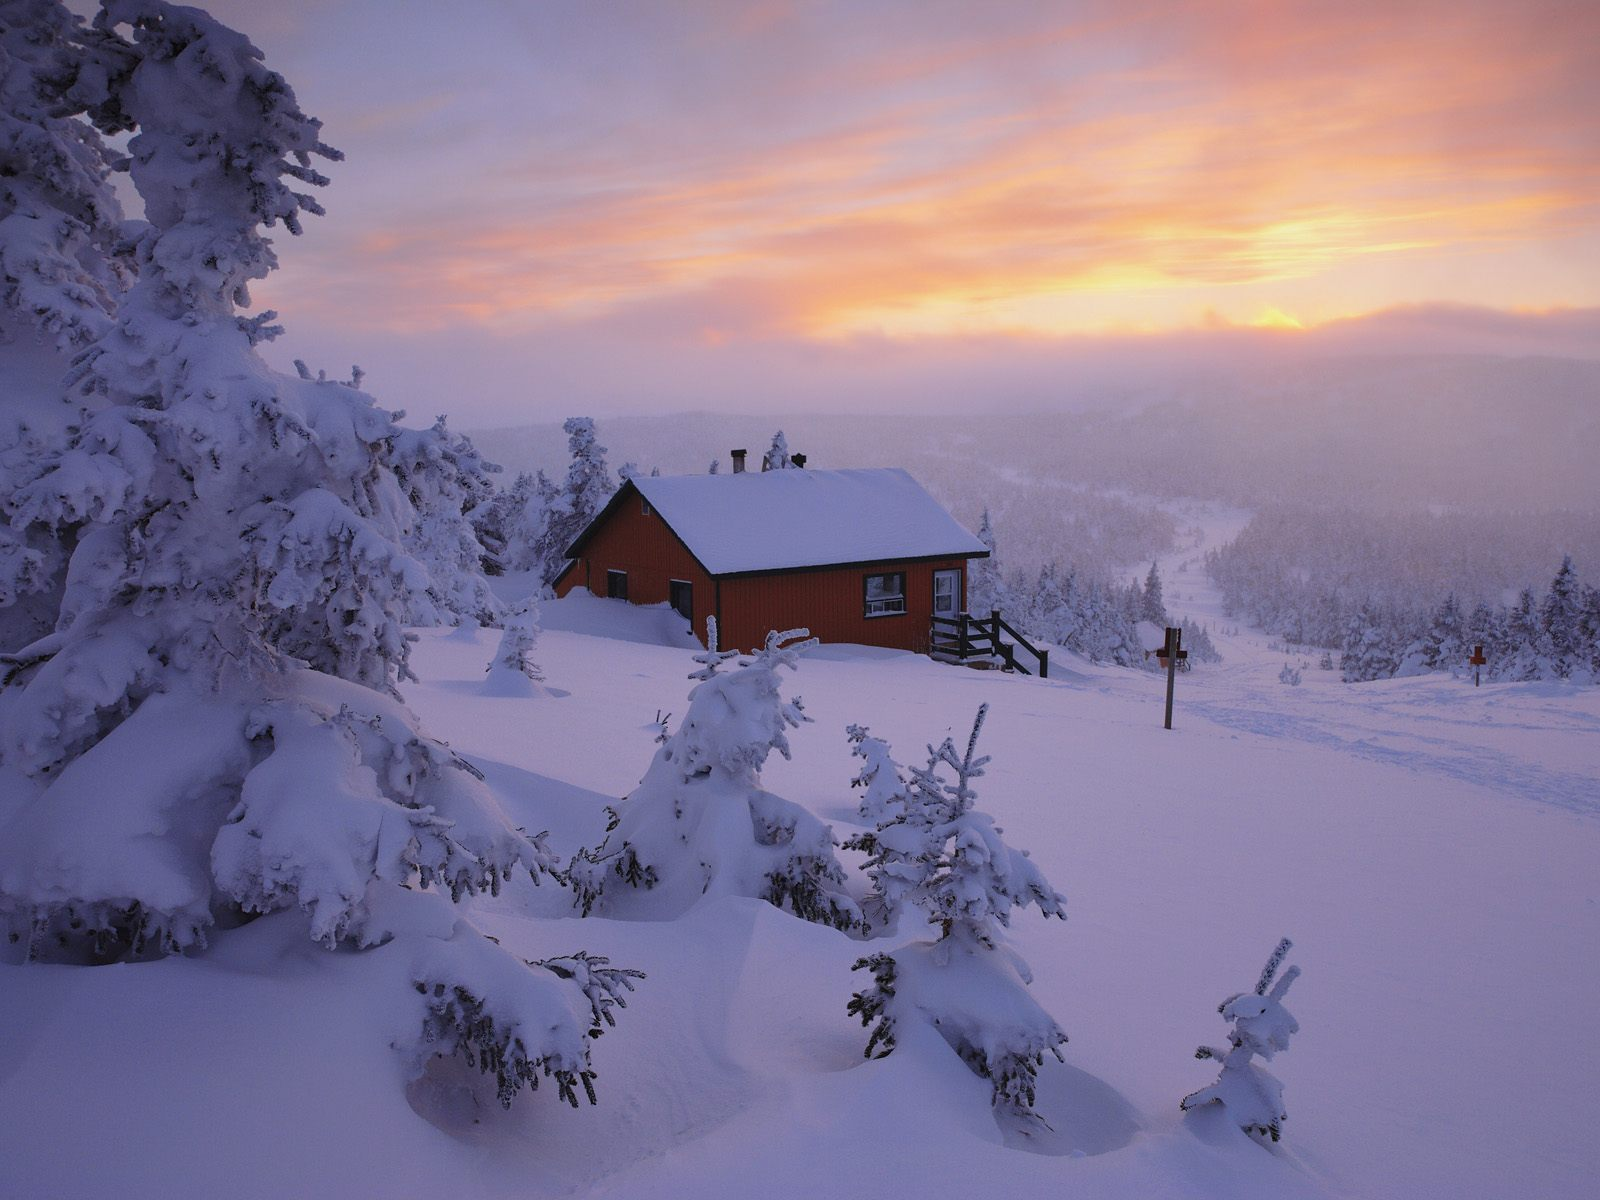 Winter Wallpaper And Background Image